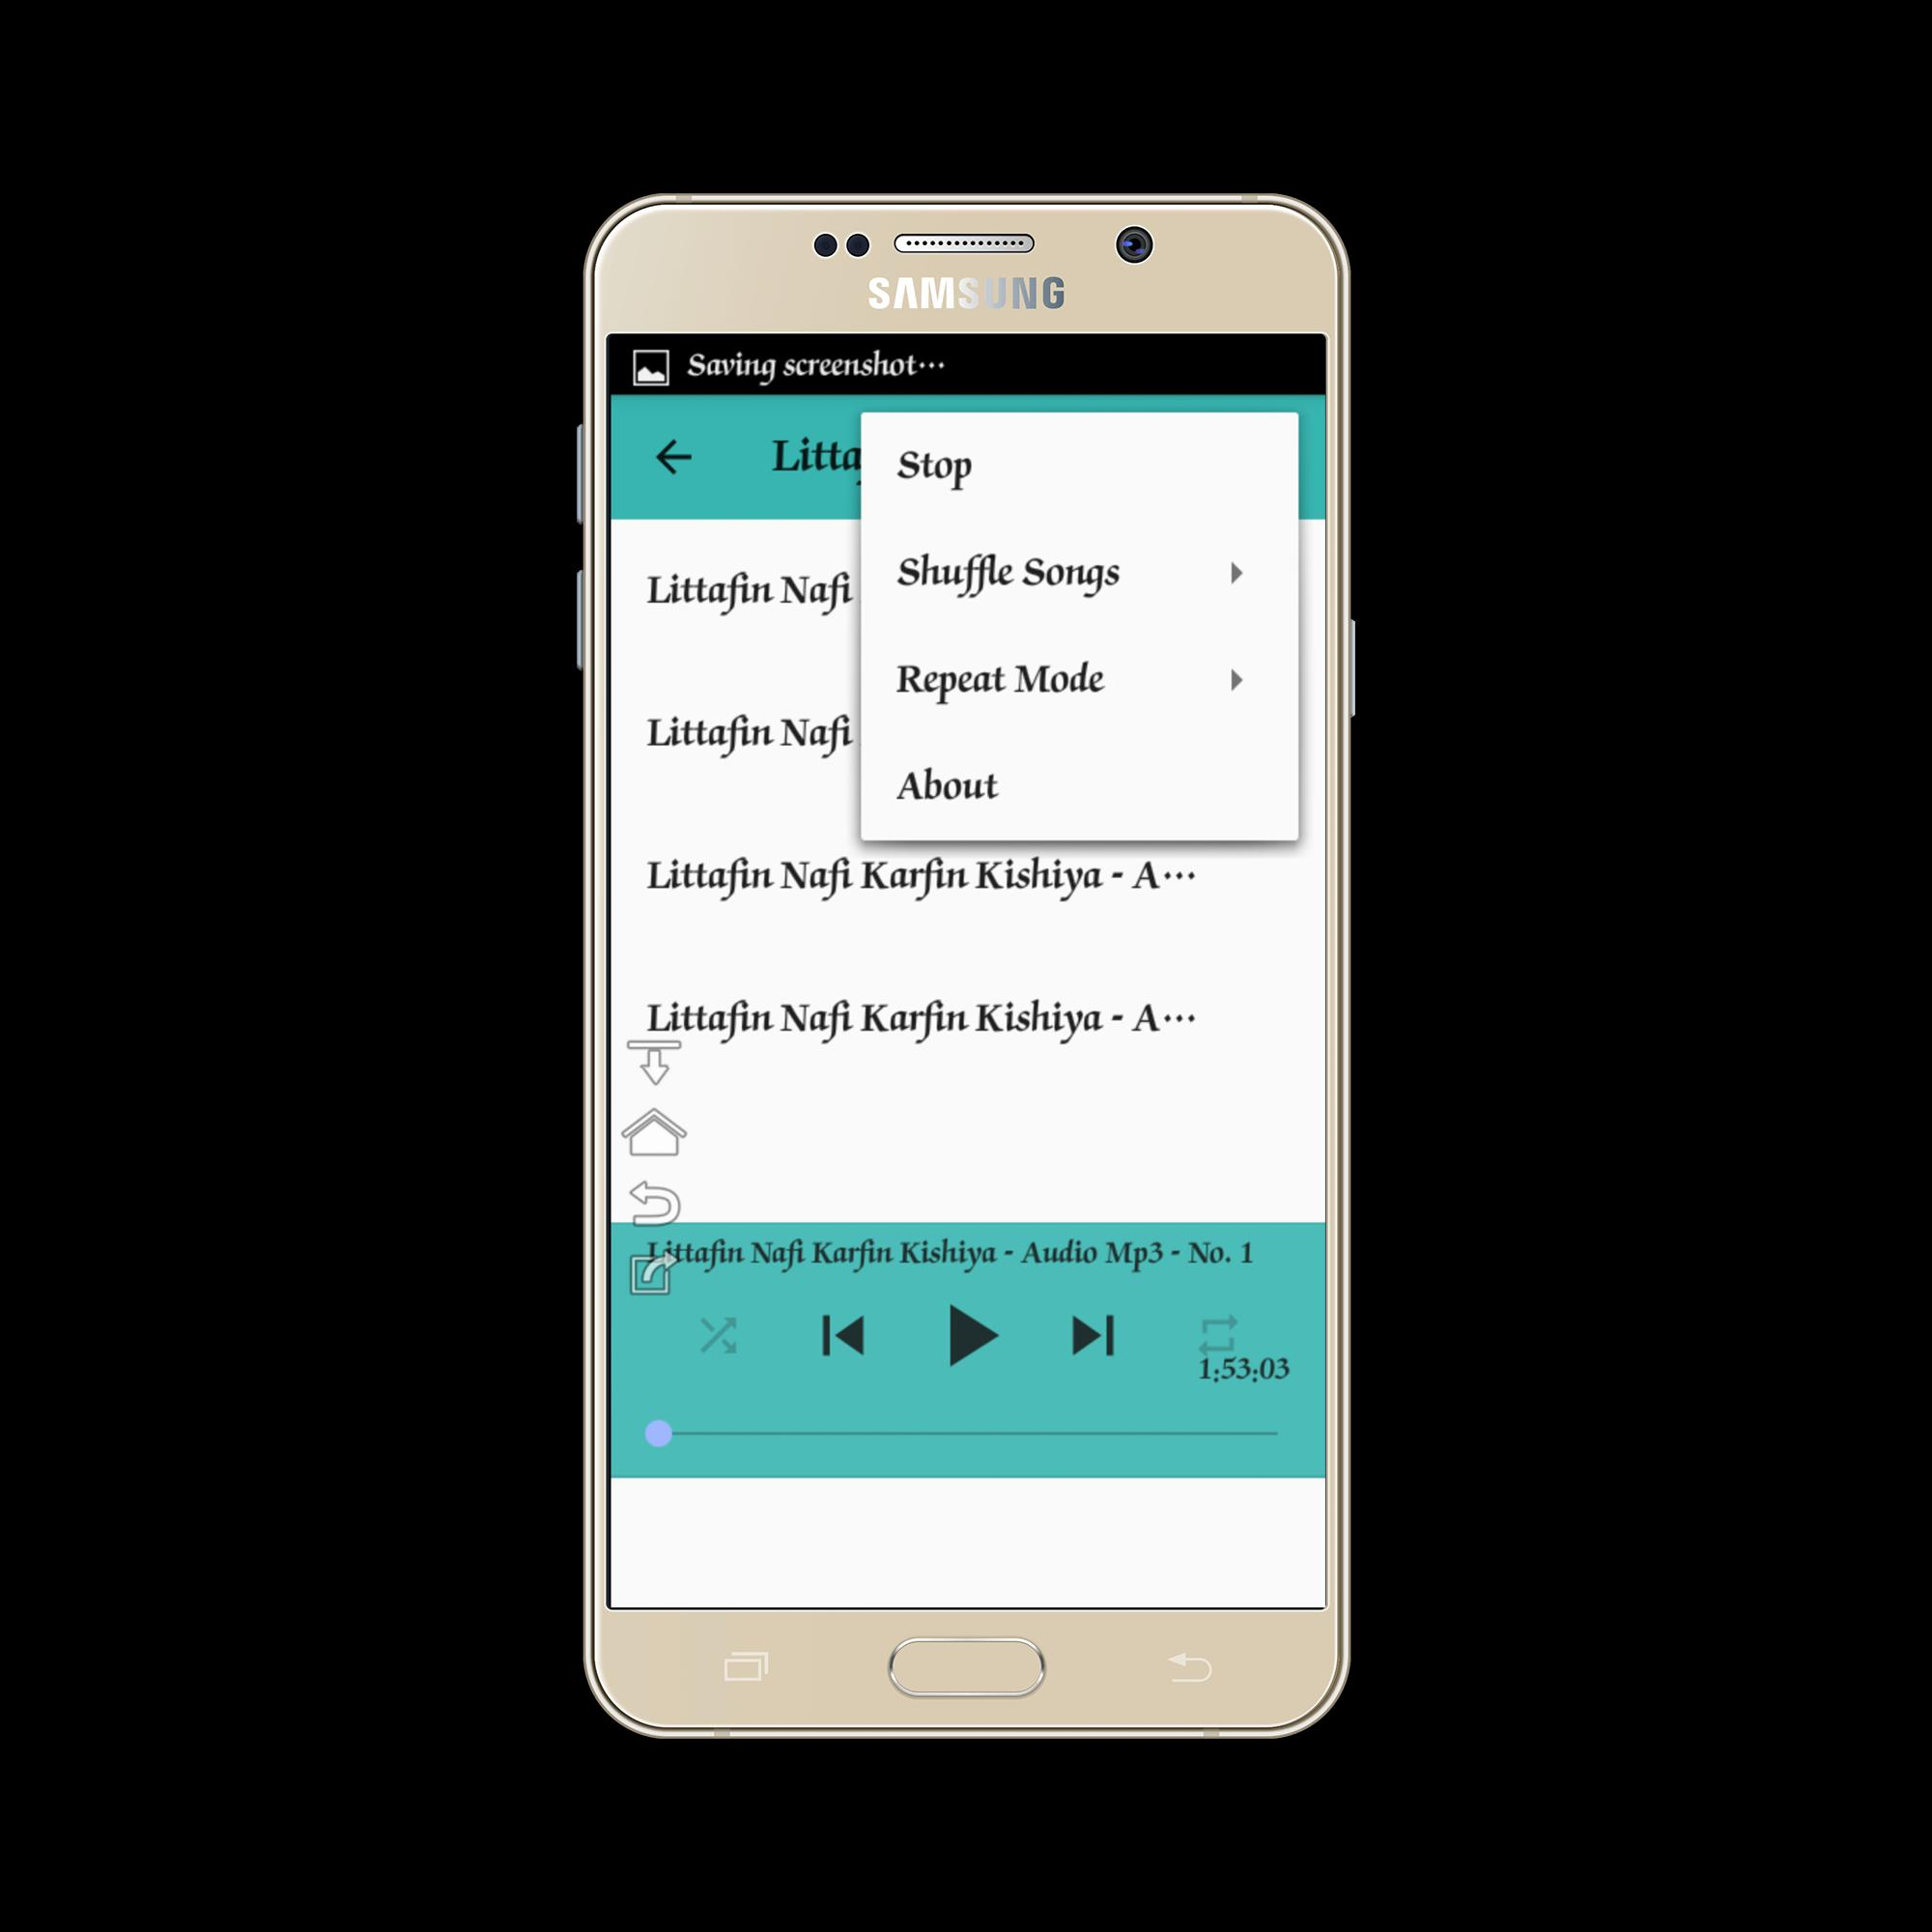 Nafi Karfin Kishiya - Audio Mp3 for Android - APK Download